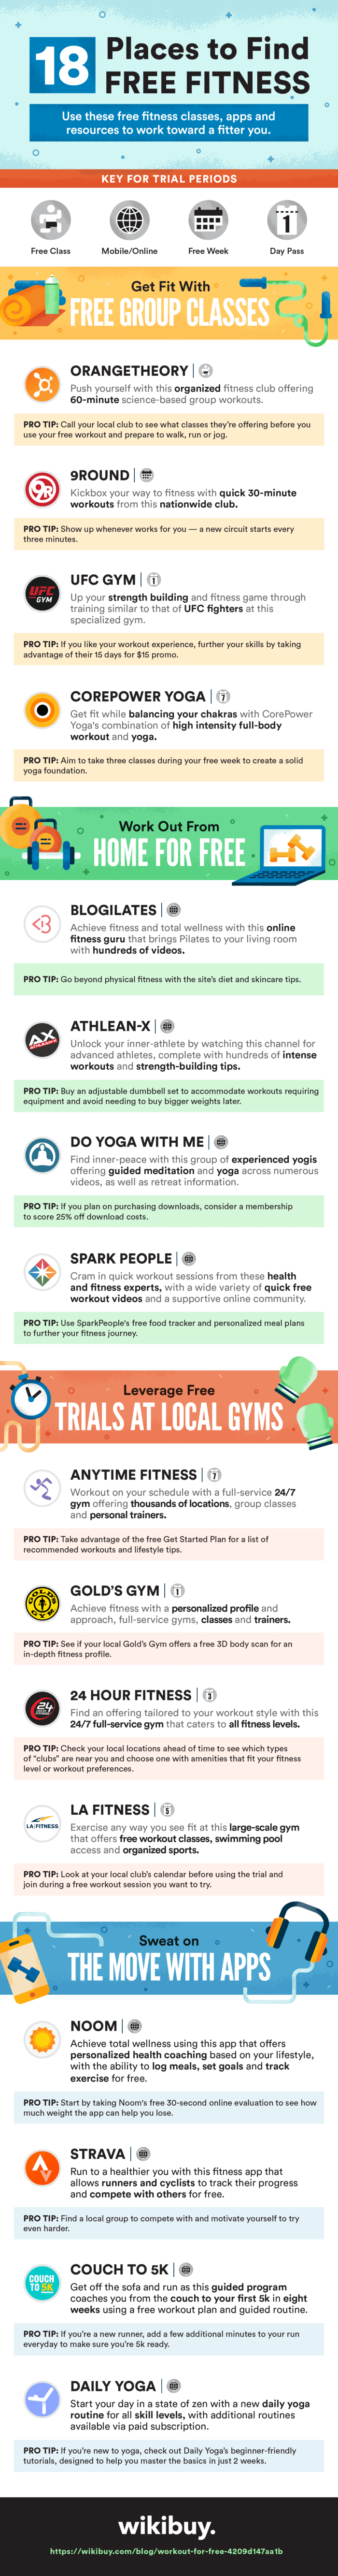 18 Places to Find Free Fitness